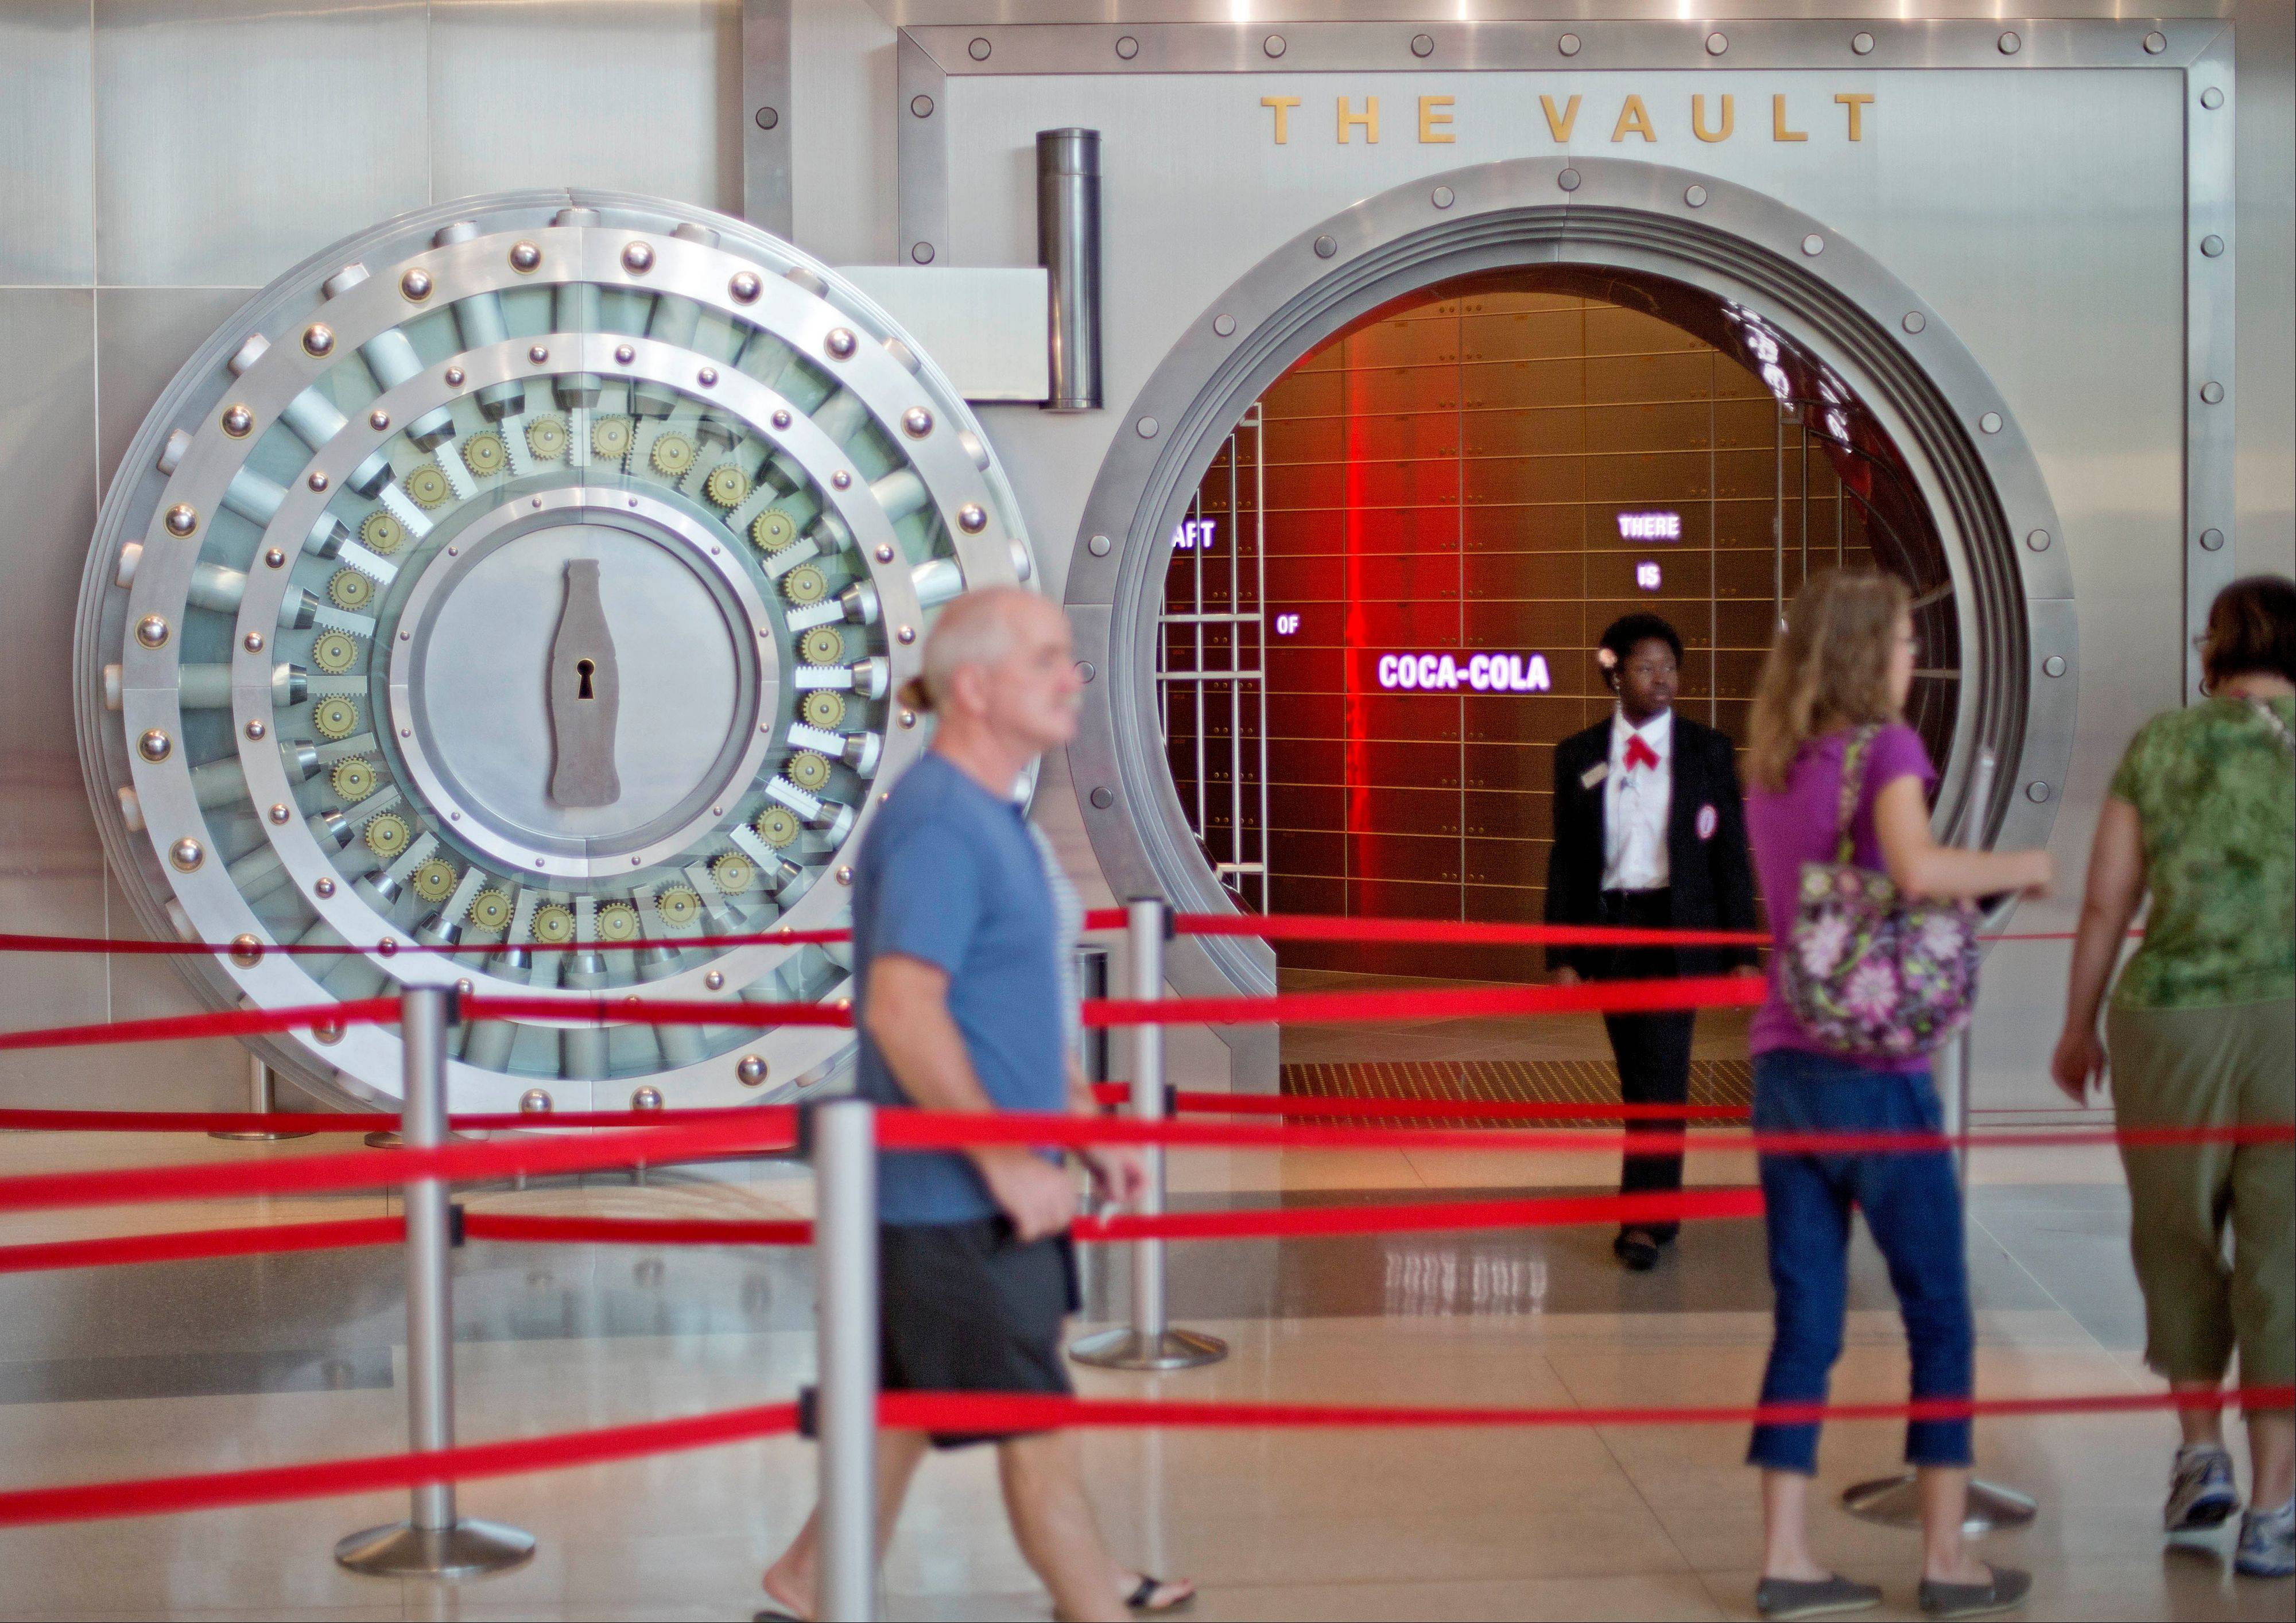 A tour group enters the vault exhibit containing the �secret recipe� for Coca-Cola at the World of Coca-Cola museum in Atlanta. The 127-year-old recipe for Coke sits inside an imposing steel vault bathed in red security lights, while security cameras monitor the area to make sure the fizzy formula stays secret.